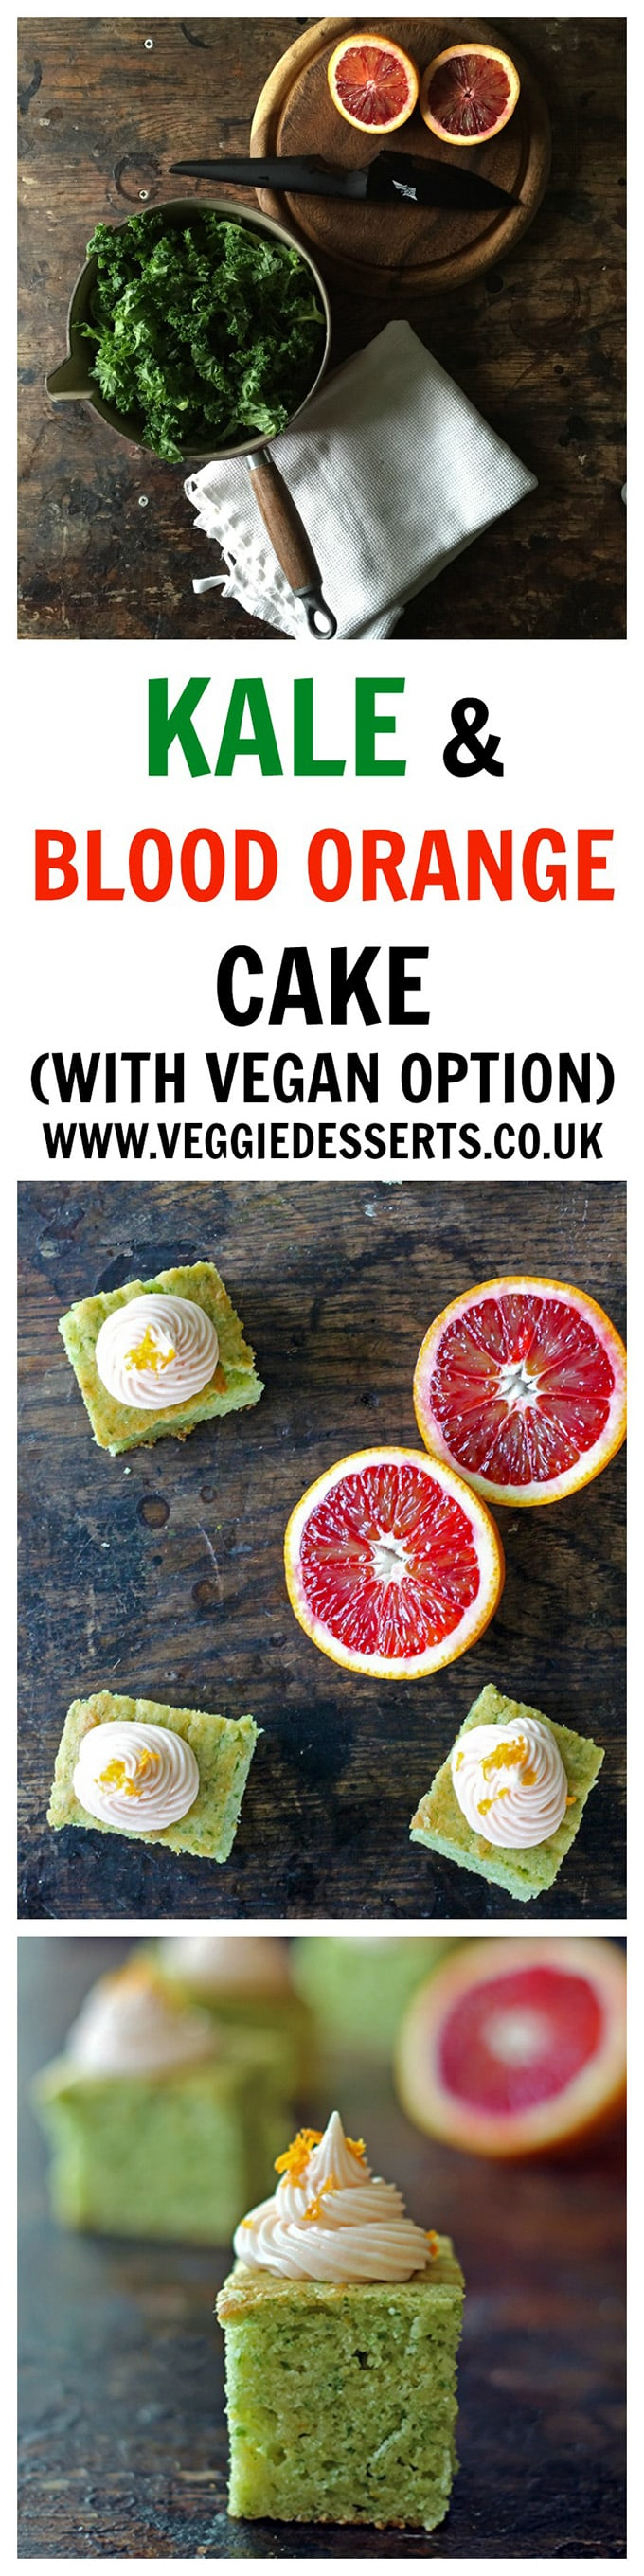 Pieces of cake on a table, with the text: Kale Orange Cake with vegan option.